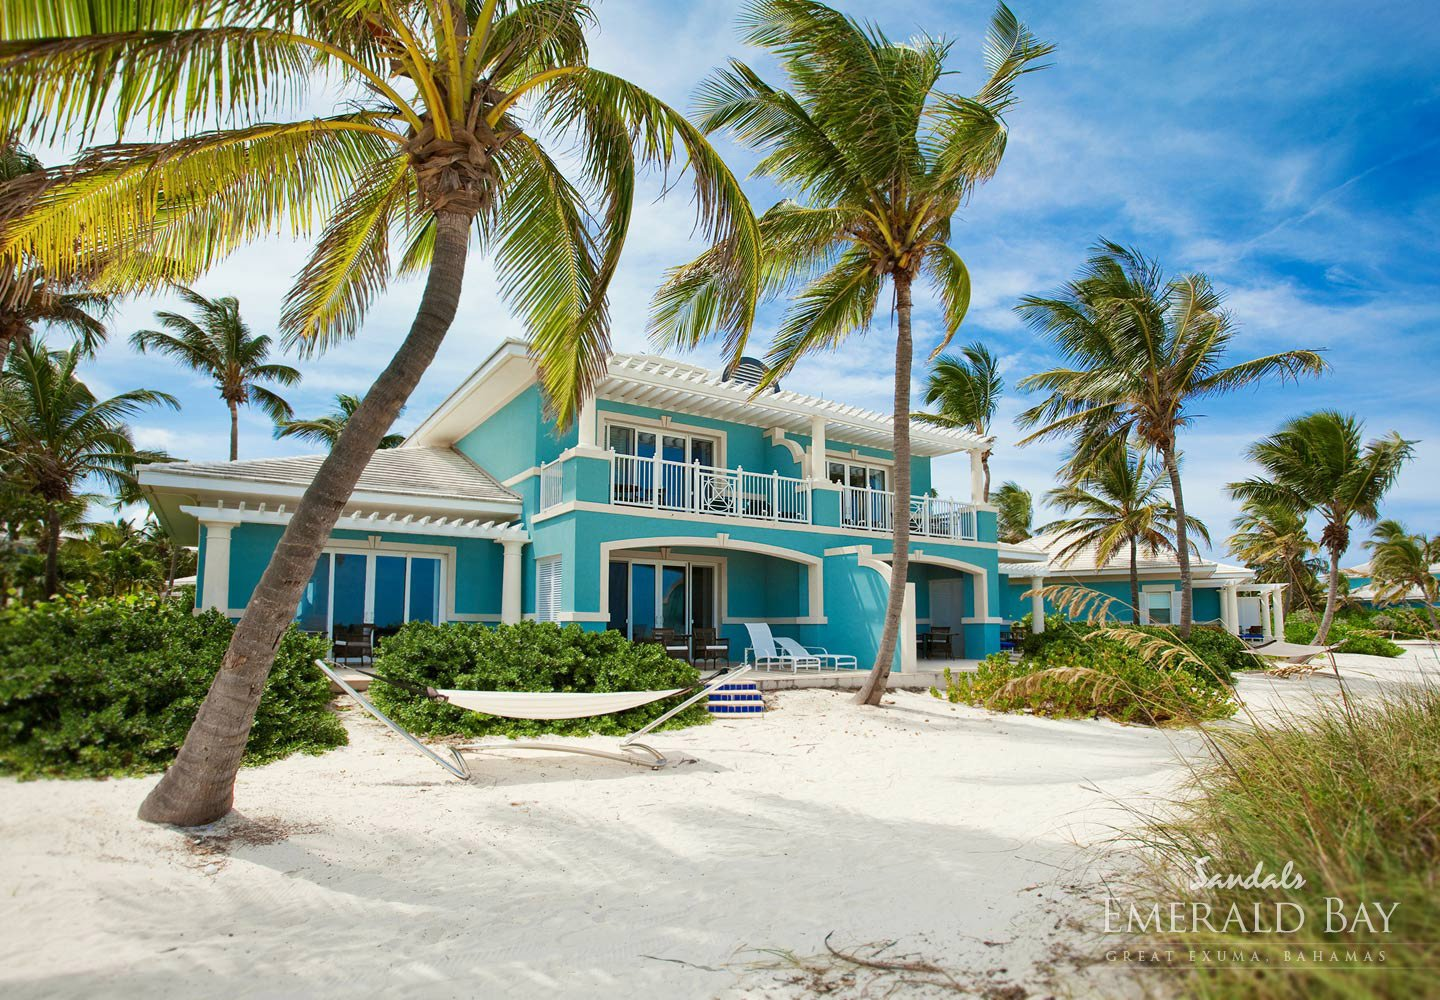 Sandals emerald bay travel agent destination weddings for Best caribbean honeymoon resorts